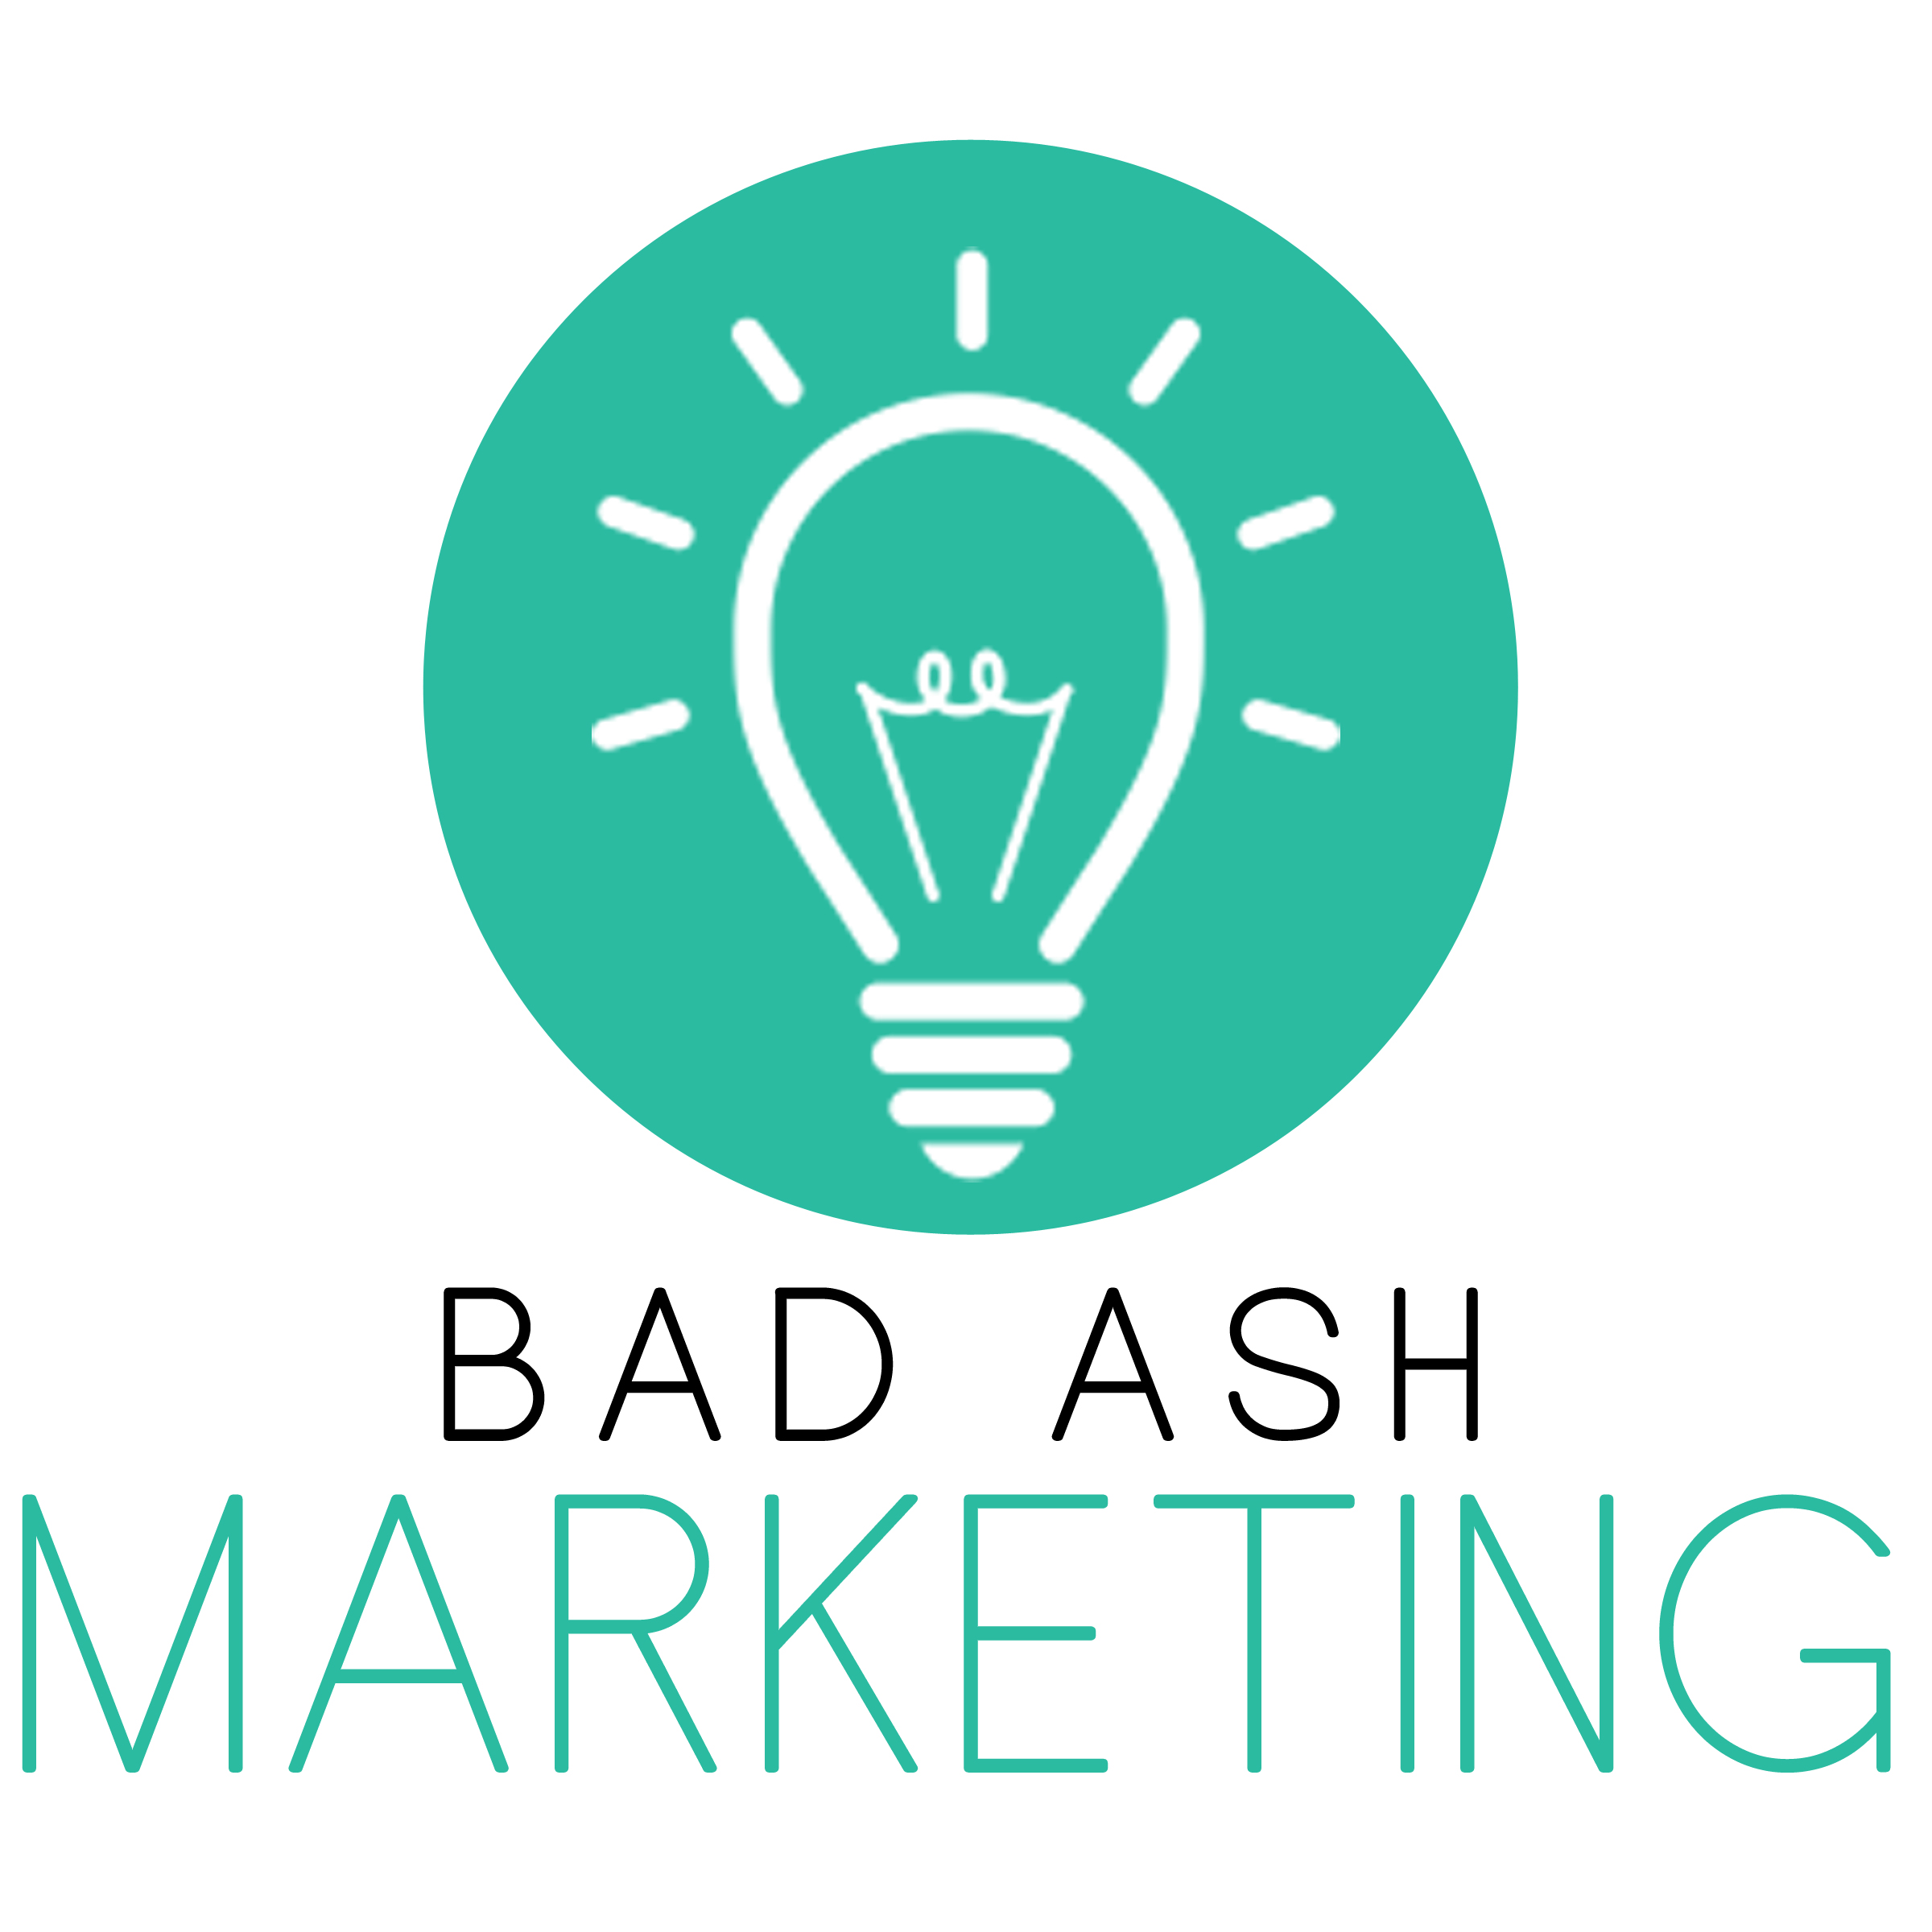 Bad Ash Marketing Logo.jpg